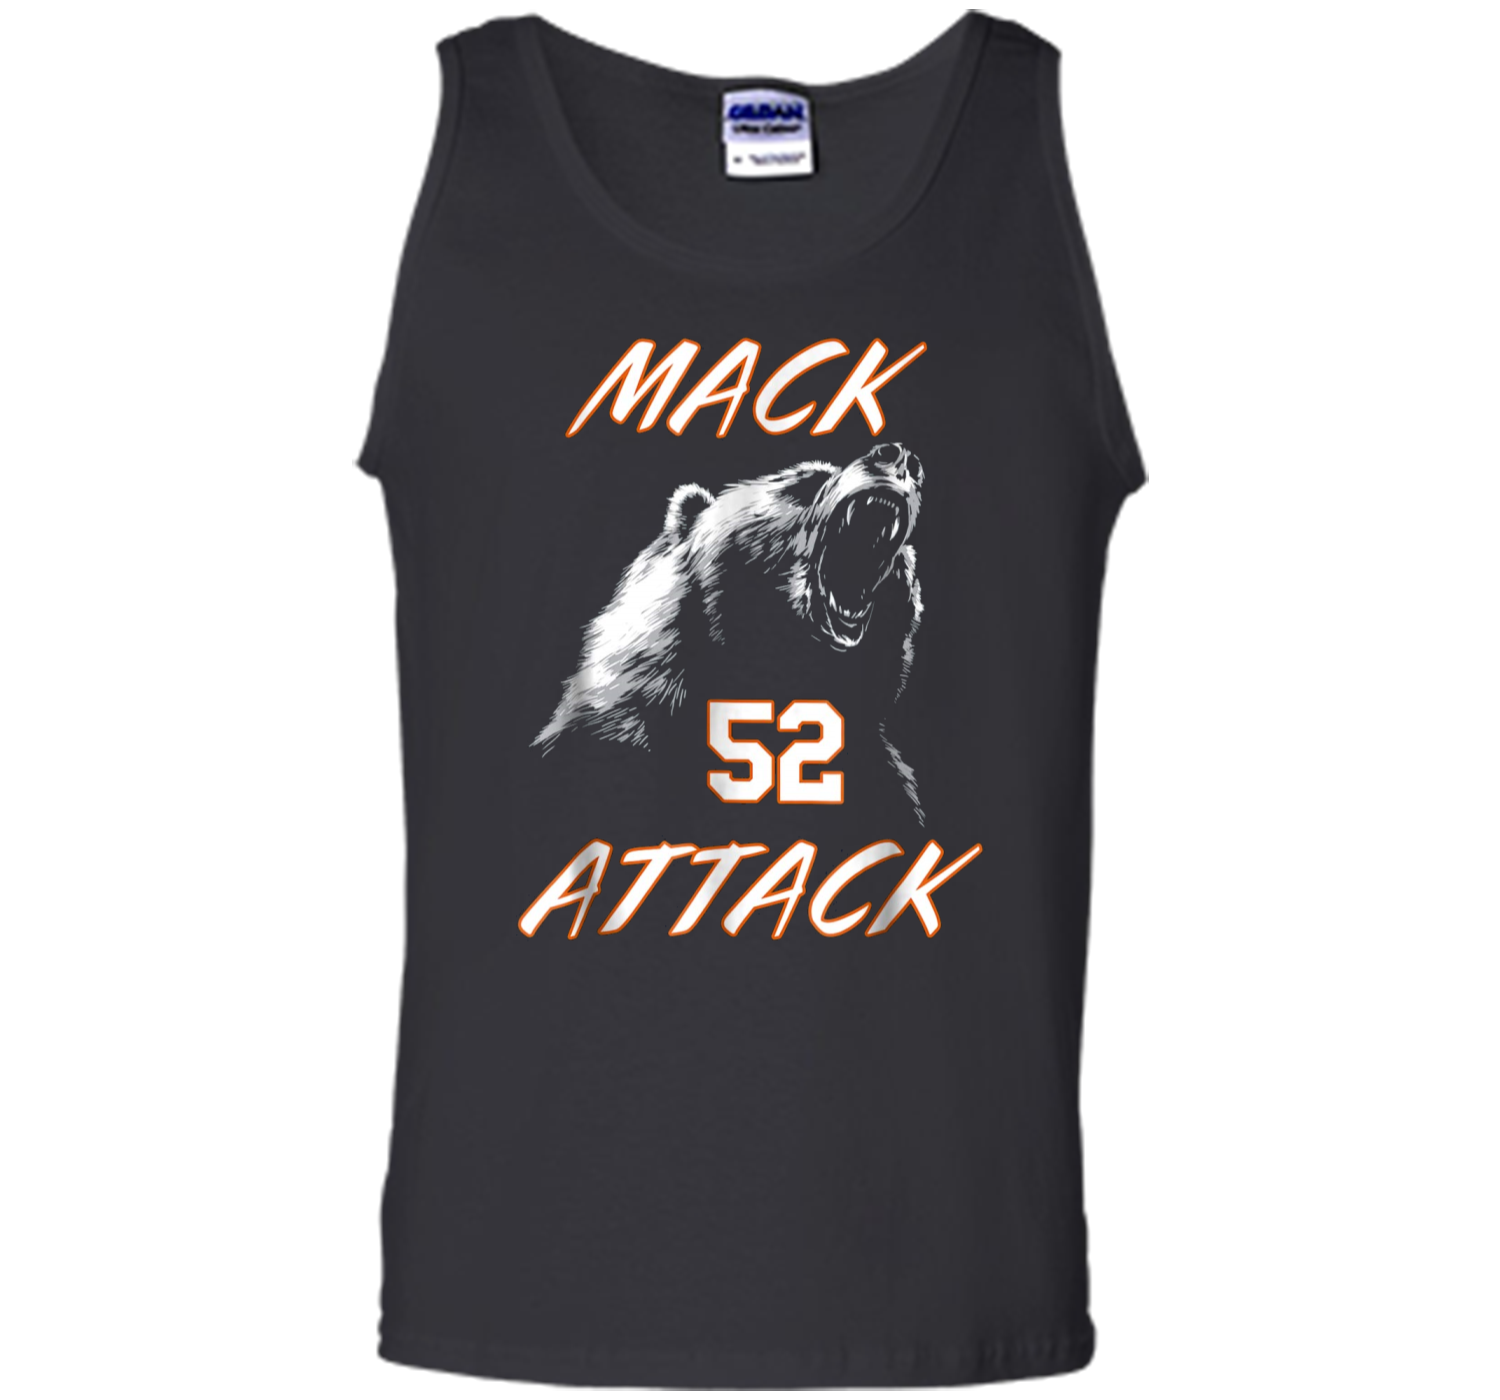 Mack Attack Bear Beast Chicago Welcome New Player 52 Tank Top Tank ... b9a0c2428